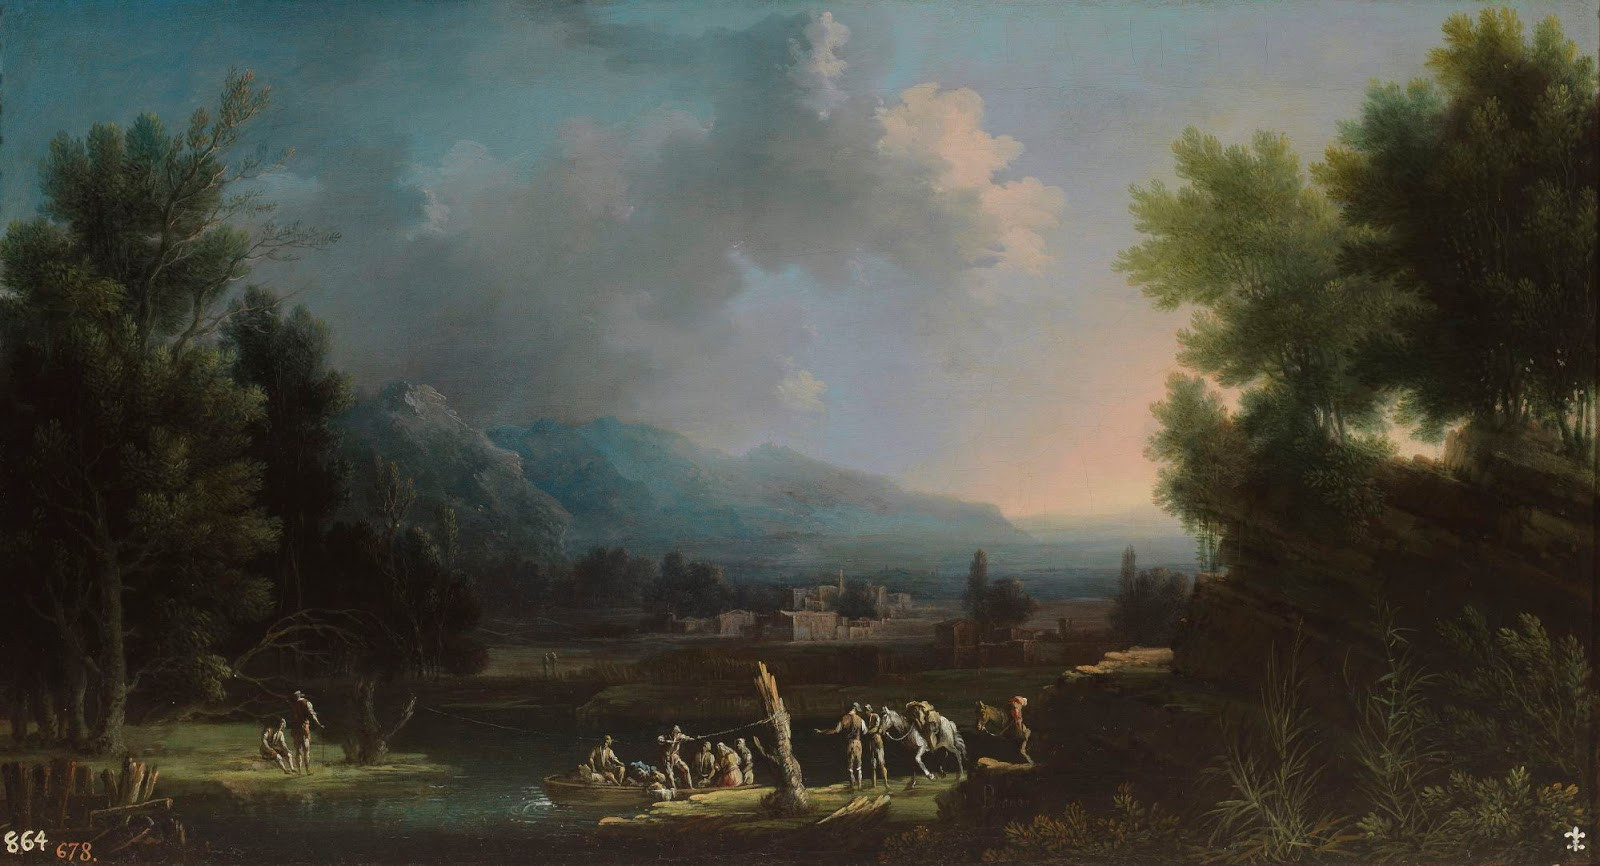 Landscape Painting Images  Spencer Alley European Landscape Paintings 18th century